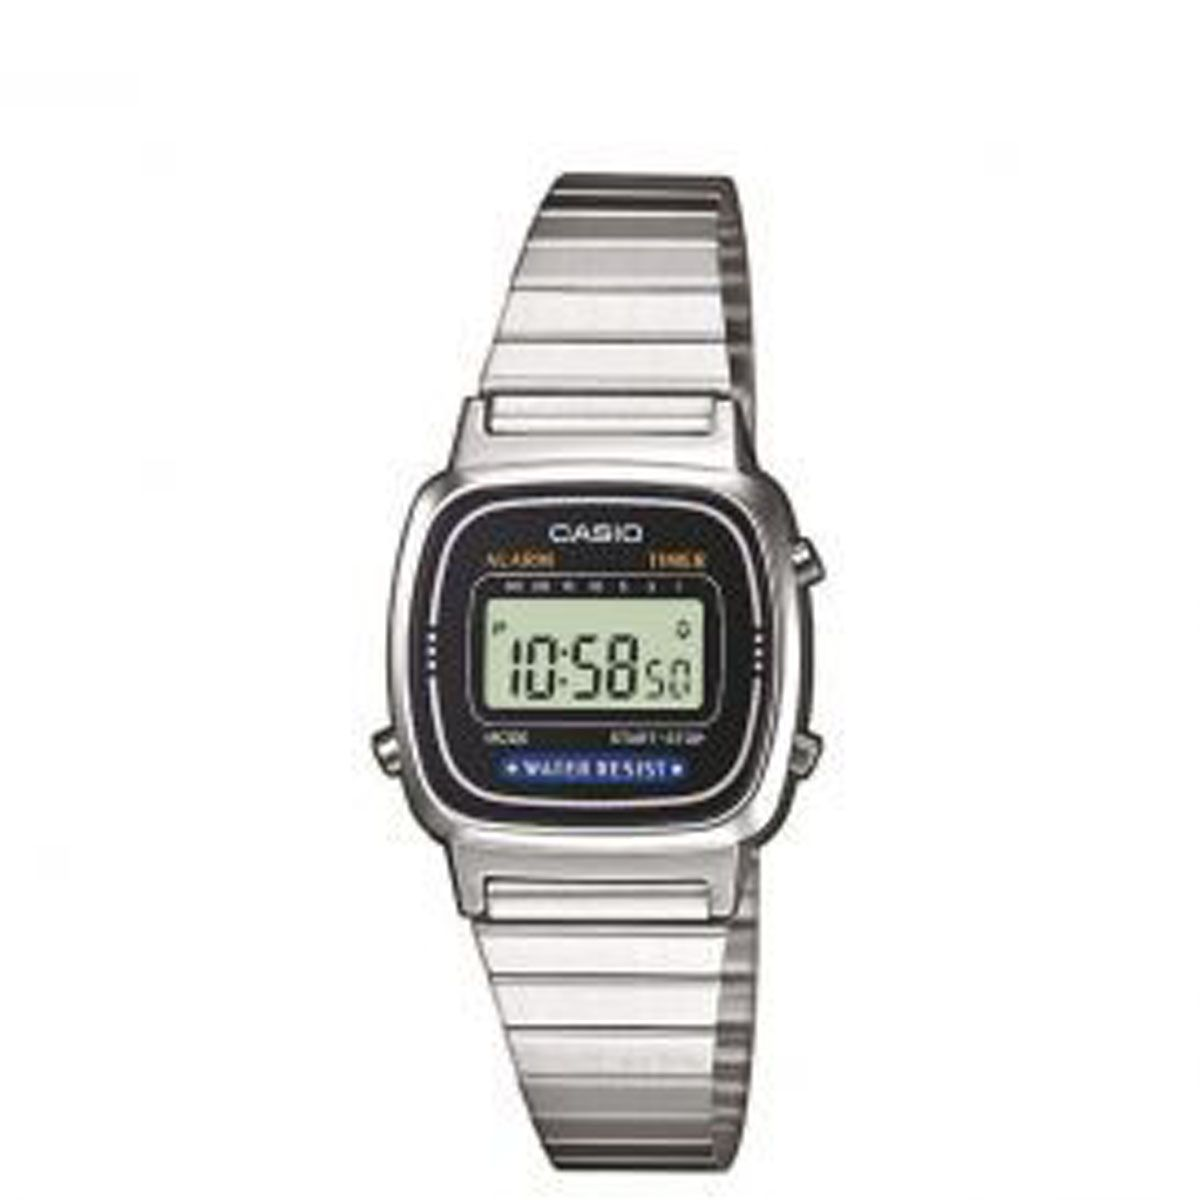 montre digitale casio